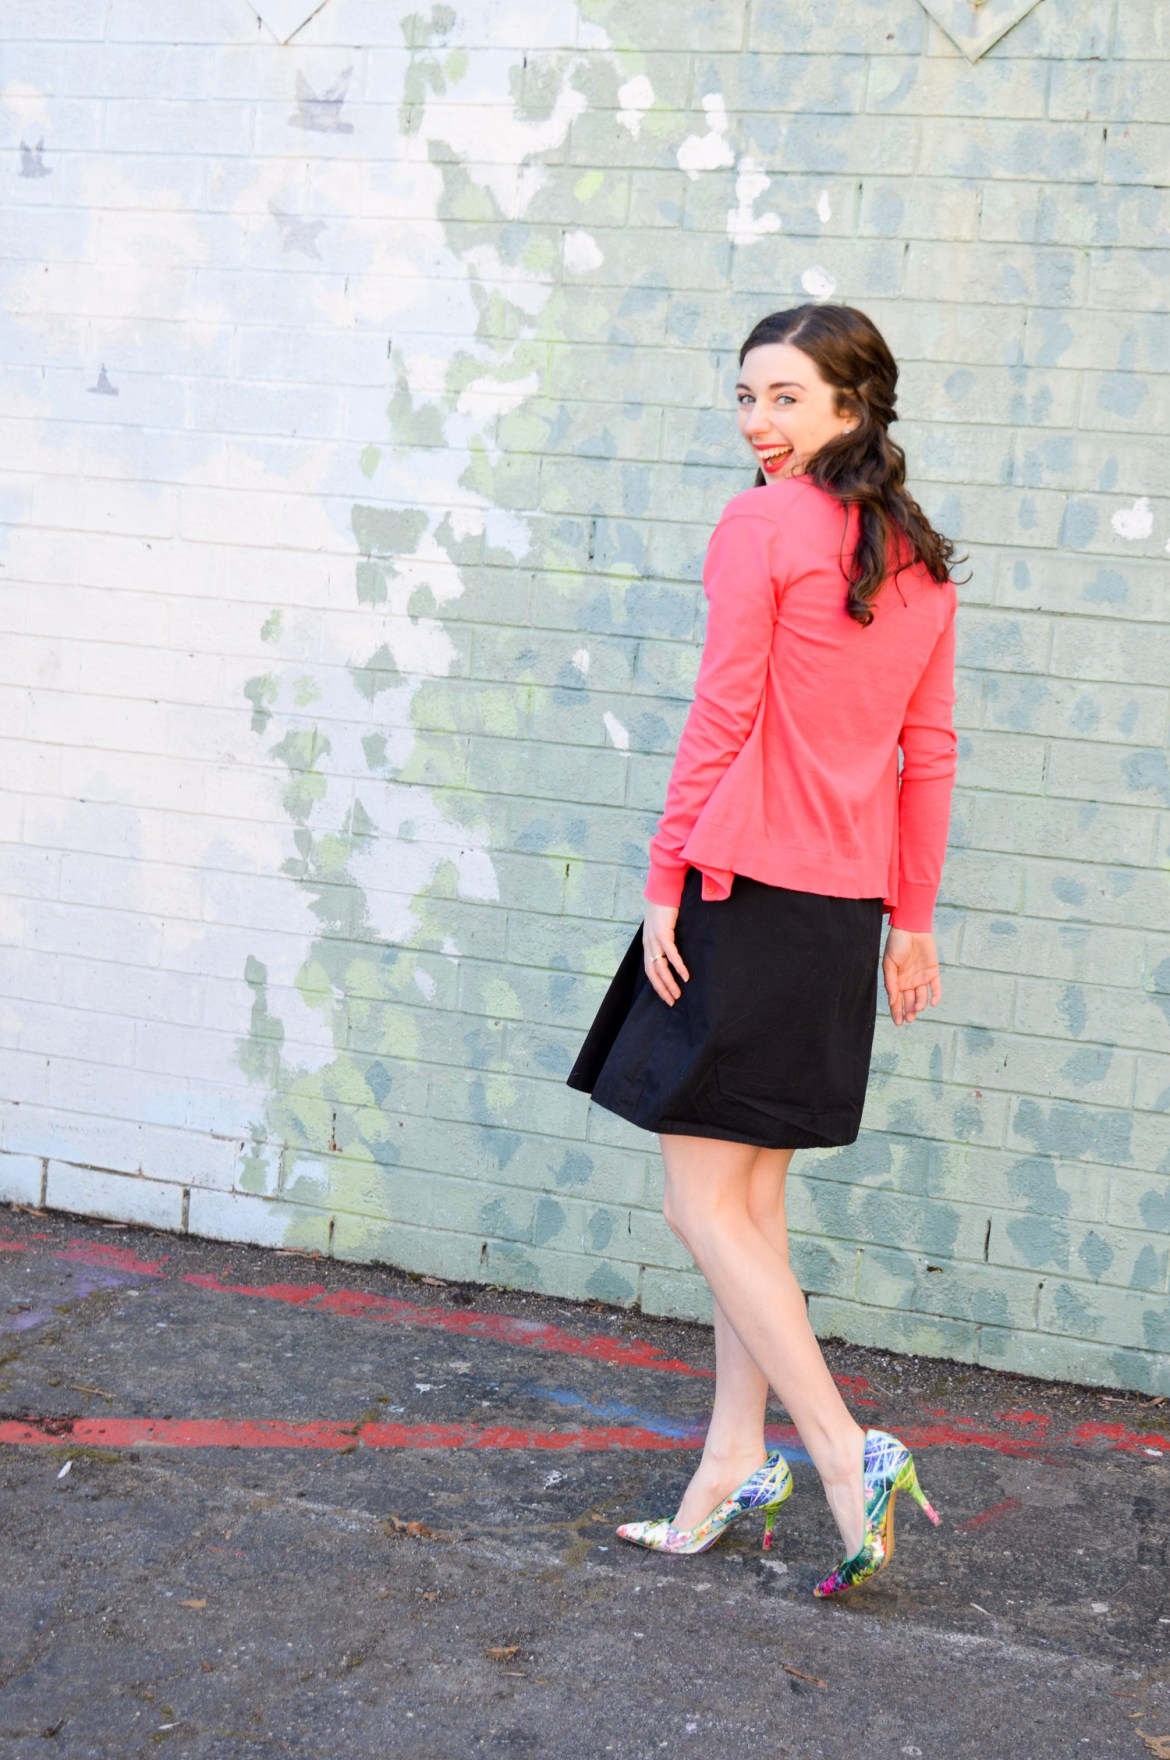 3 Ways to Wear Your Little Black Dress // Pink Cardigan + Floral Heels // Hunting for Pink Flamingos